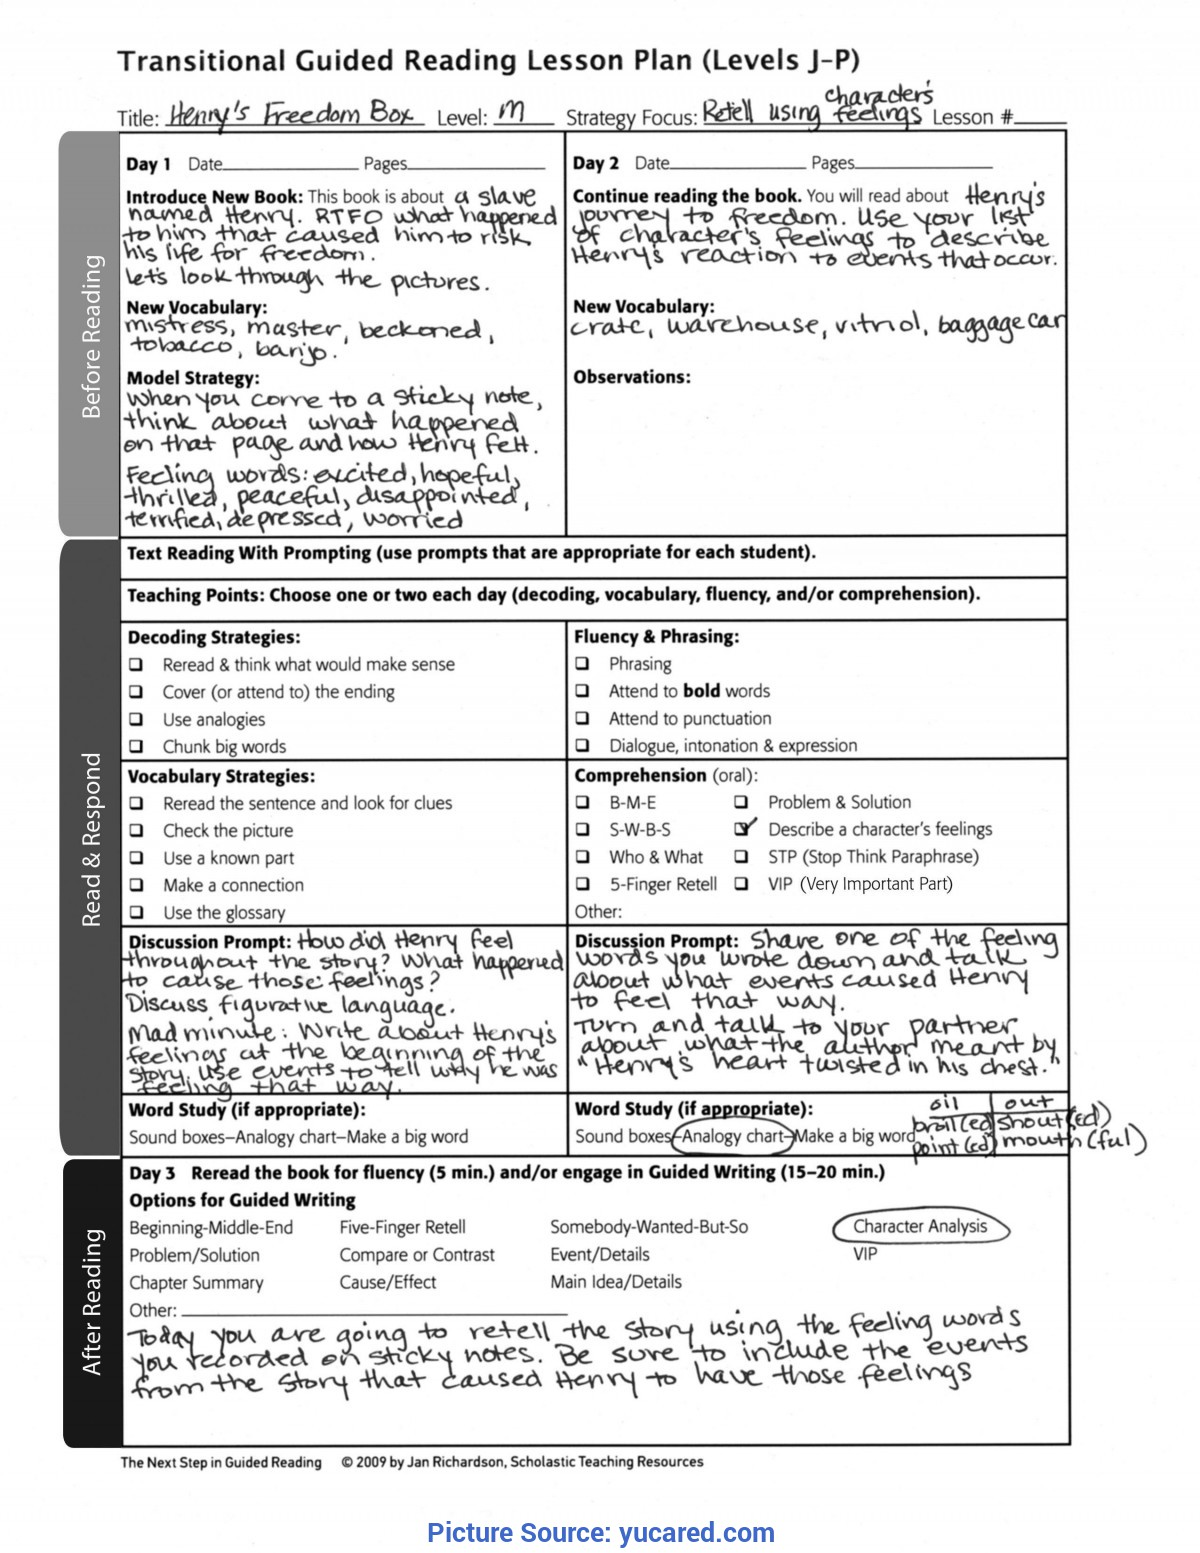 Useful Siop Model Lesson Plan Template 4 Team Lesson Plan Template Idea Siop Model 4 Themescl   Elipaltec